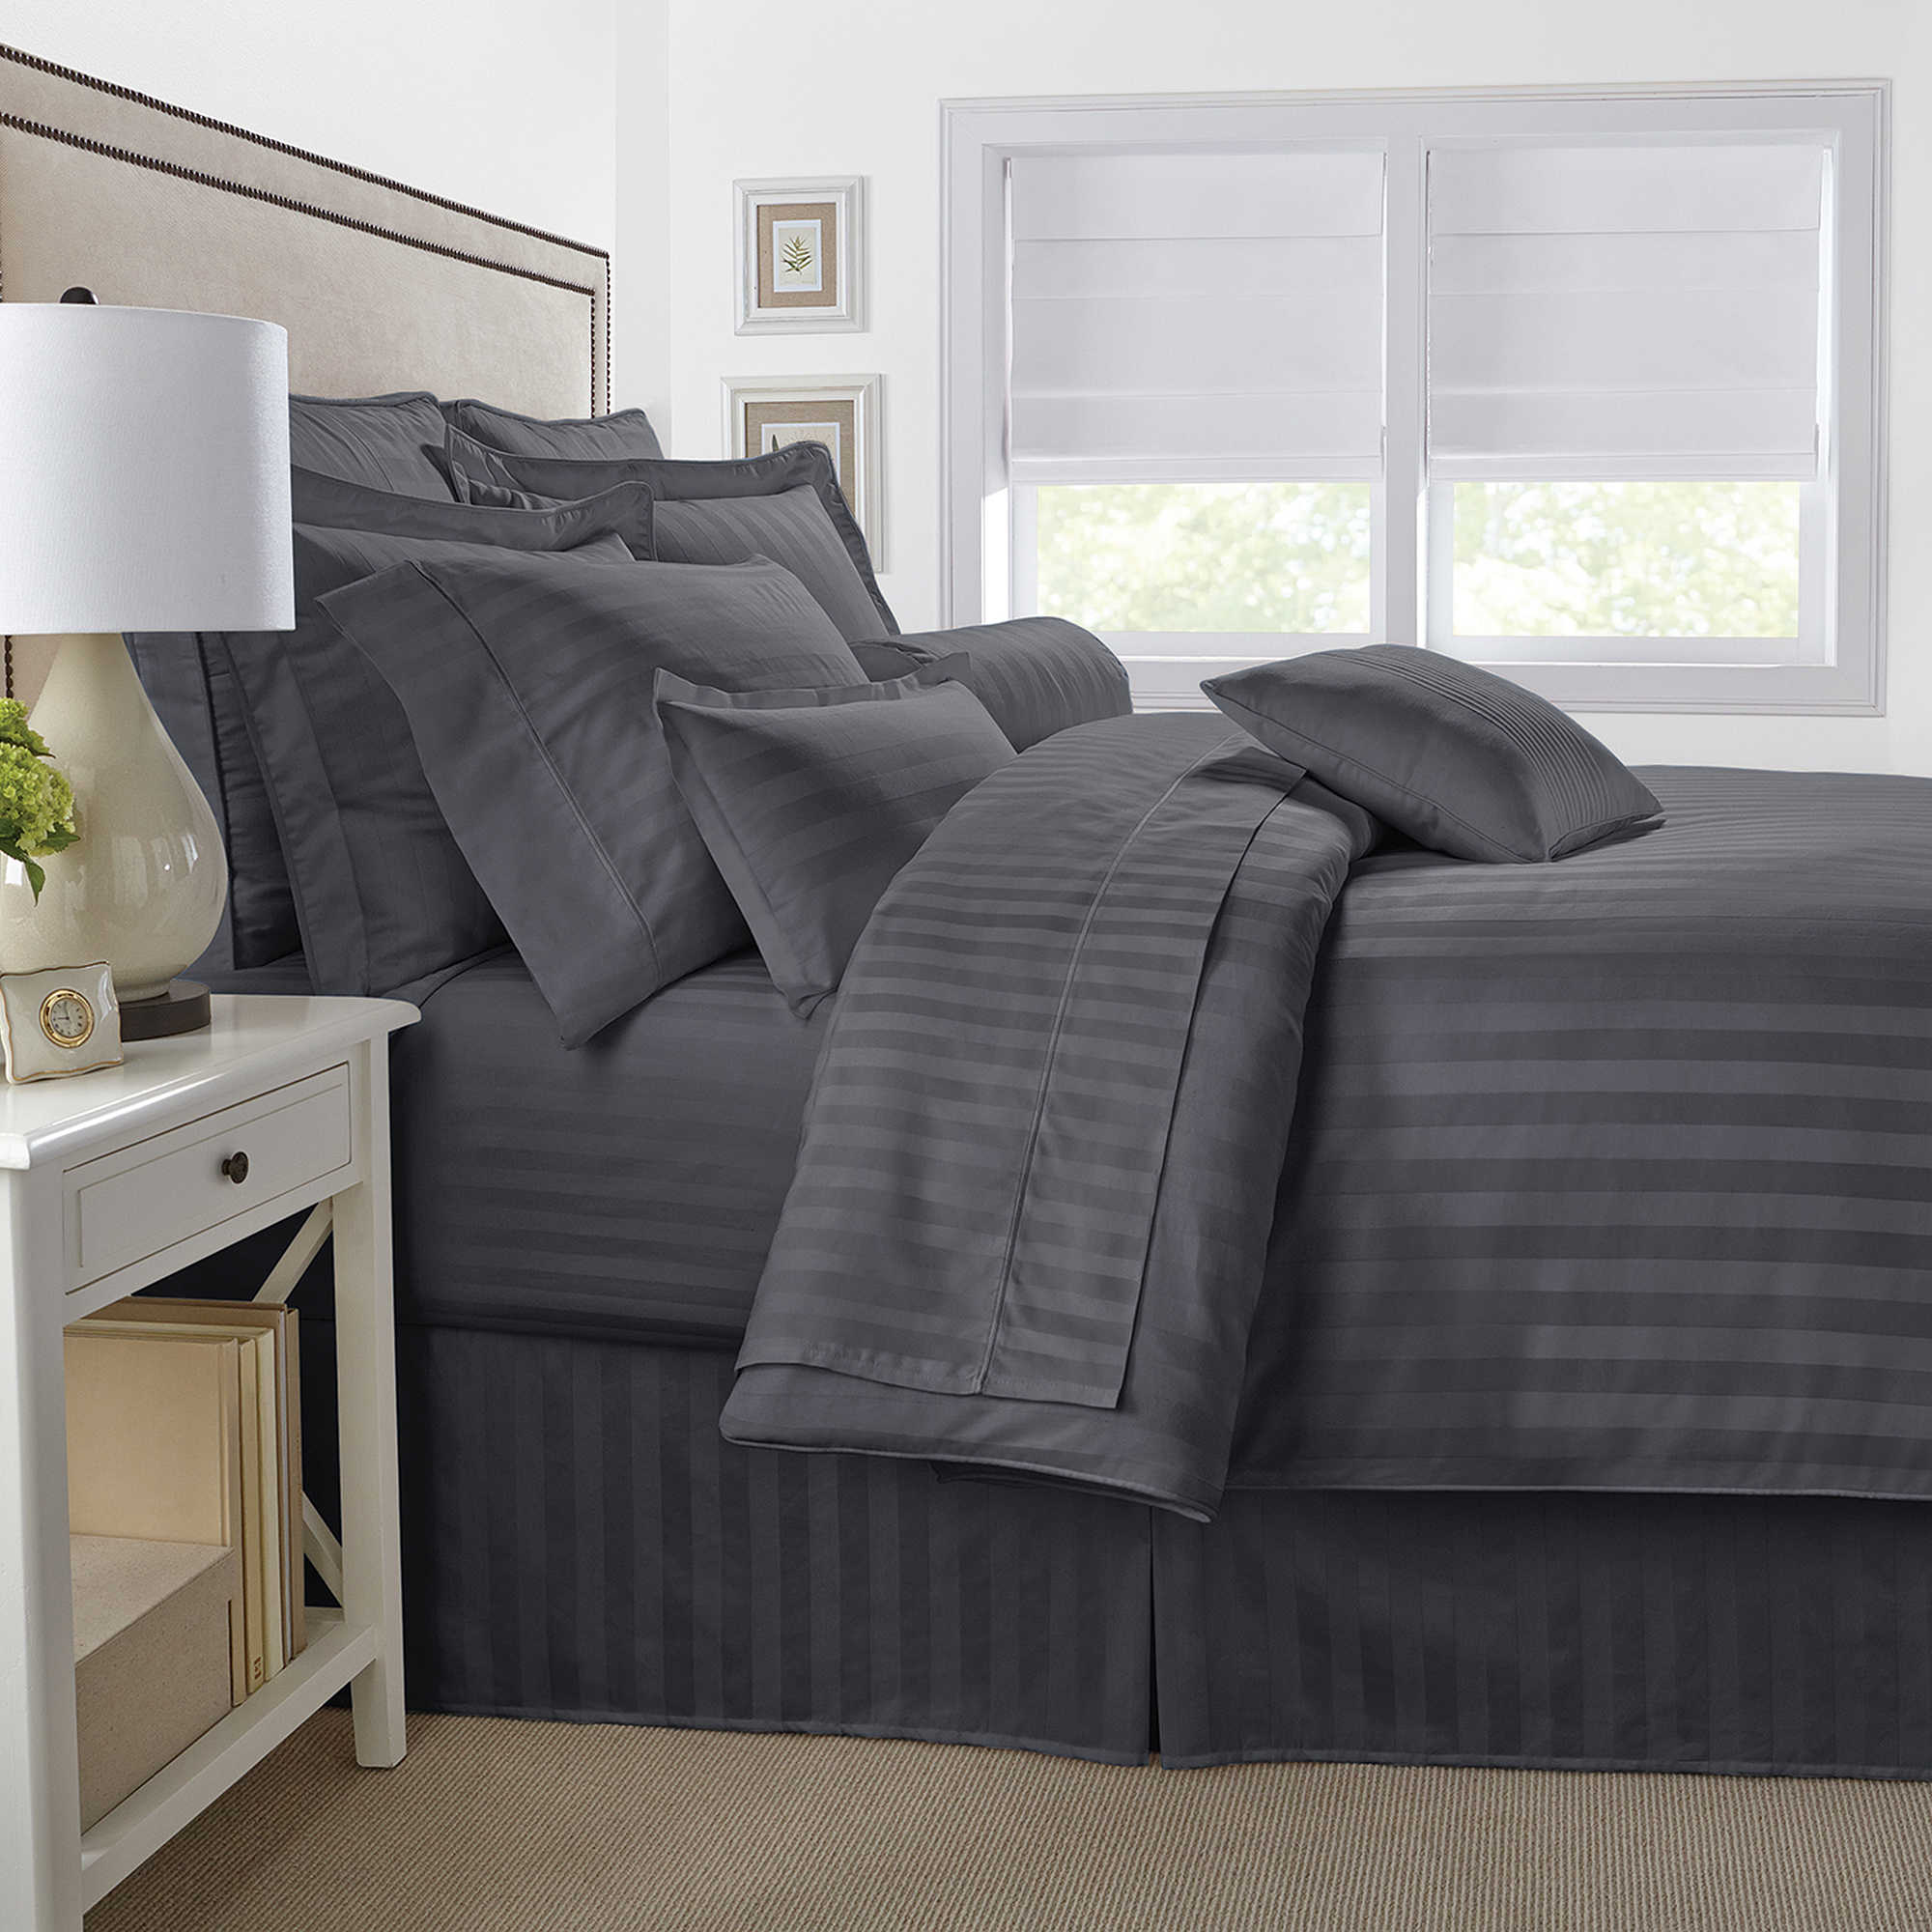 Britannica home fashions tencel sheets - Image Of 500 Thread Count Damask Stripe Reversible Duvet Cover Set